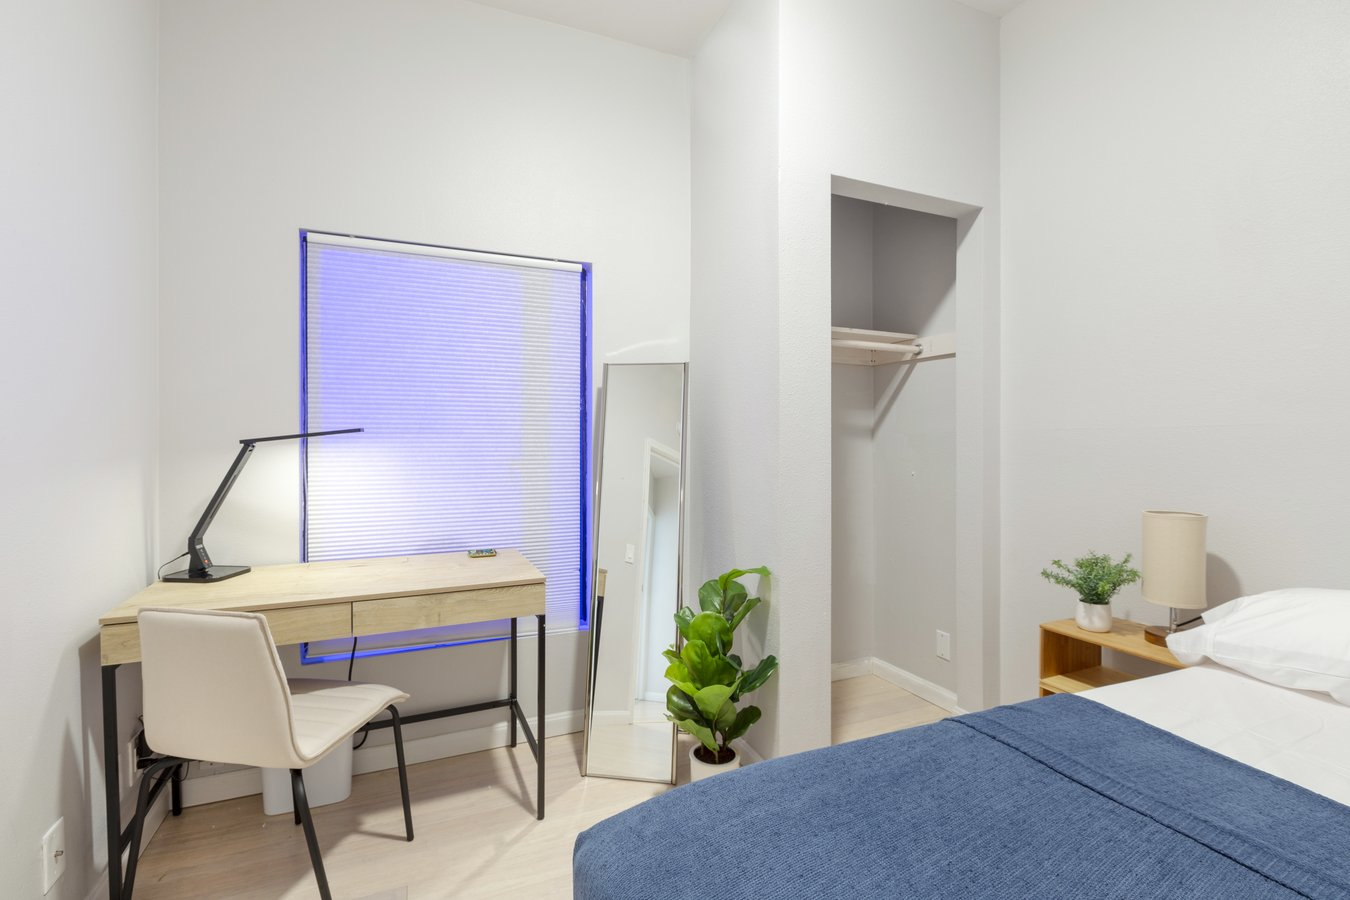 1 Bedroom 1 Bathroom House for rent at Natoma St & 7Th St Coliving in San Francisco, CA